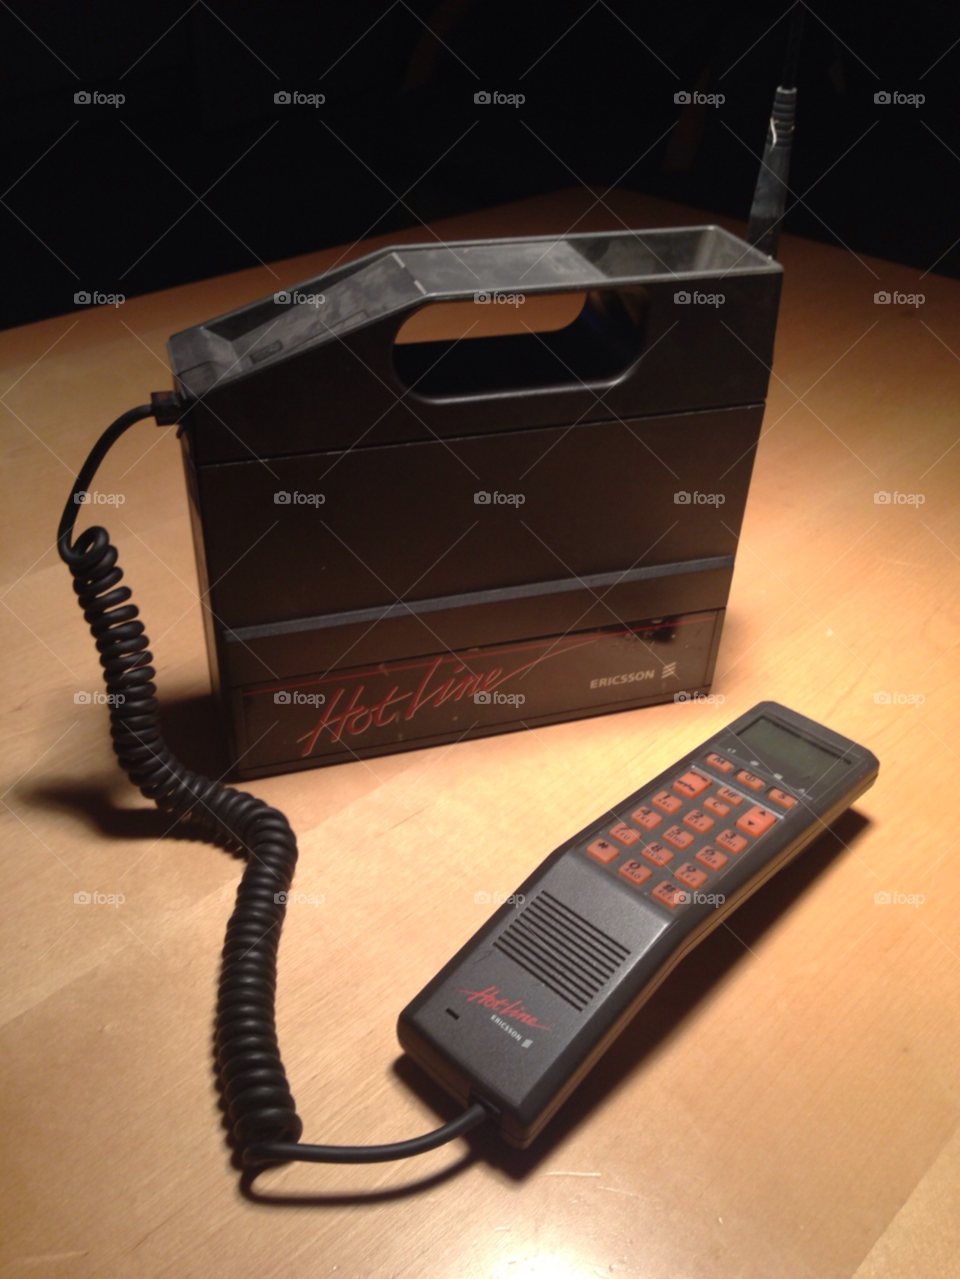 mobile phone heavy cellular by MagnusPm